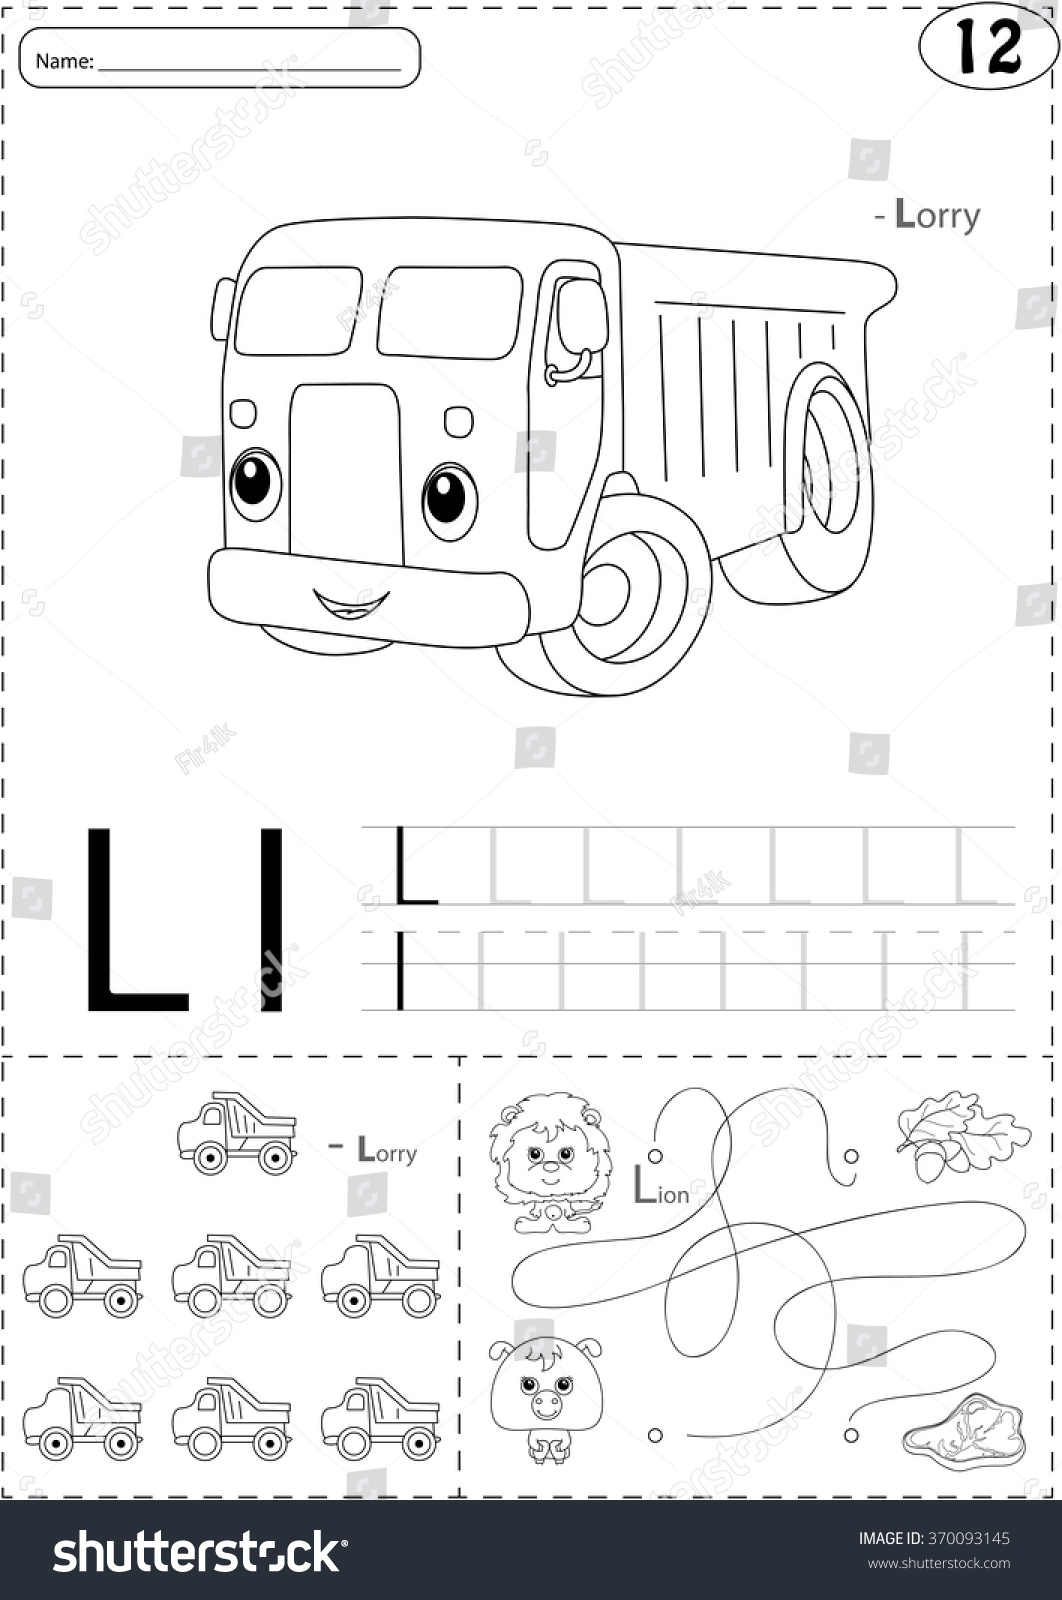 Fire Truck Tracing Worksheet For Preschoolers